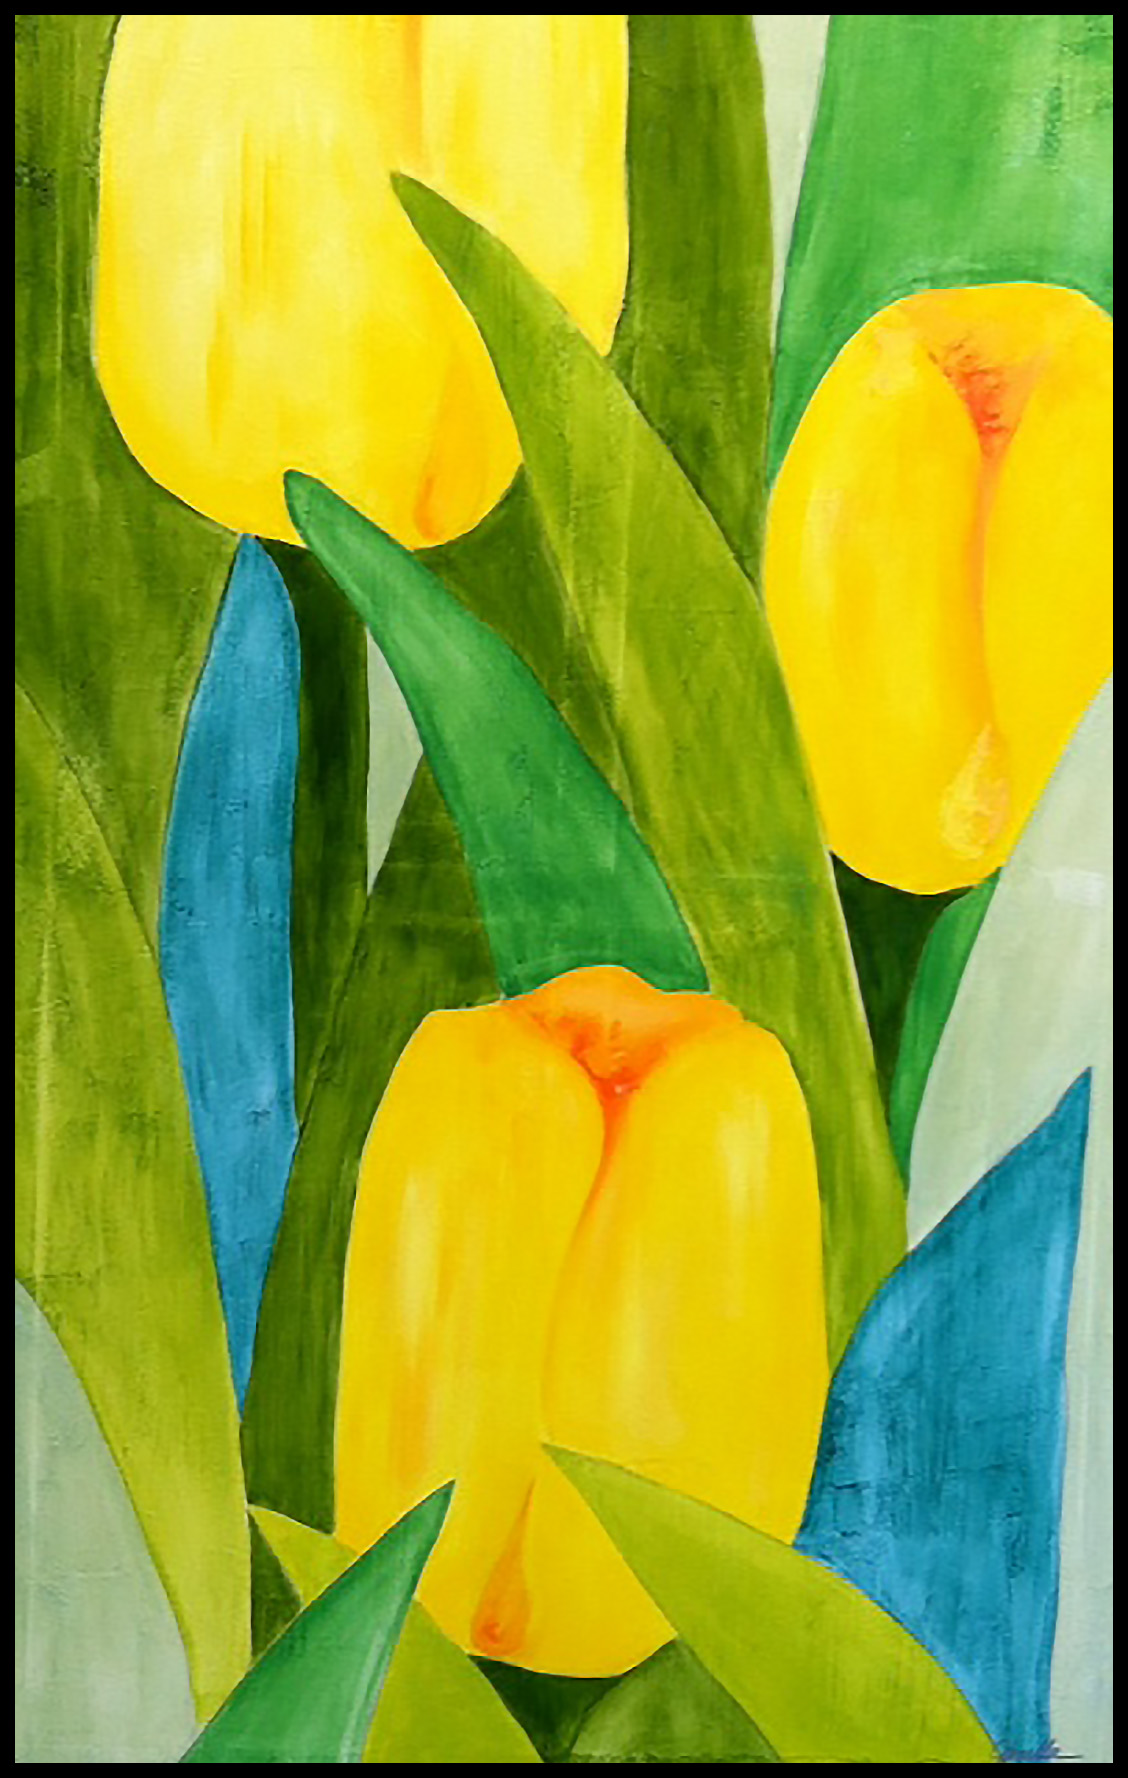 YELLOW TULIPS, 30 X 48